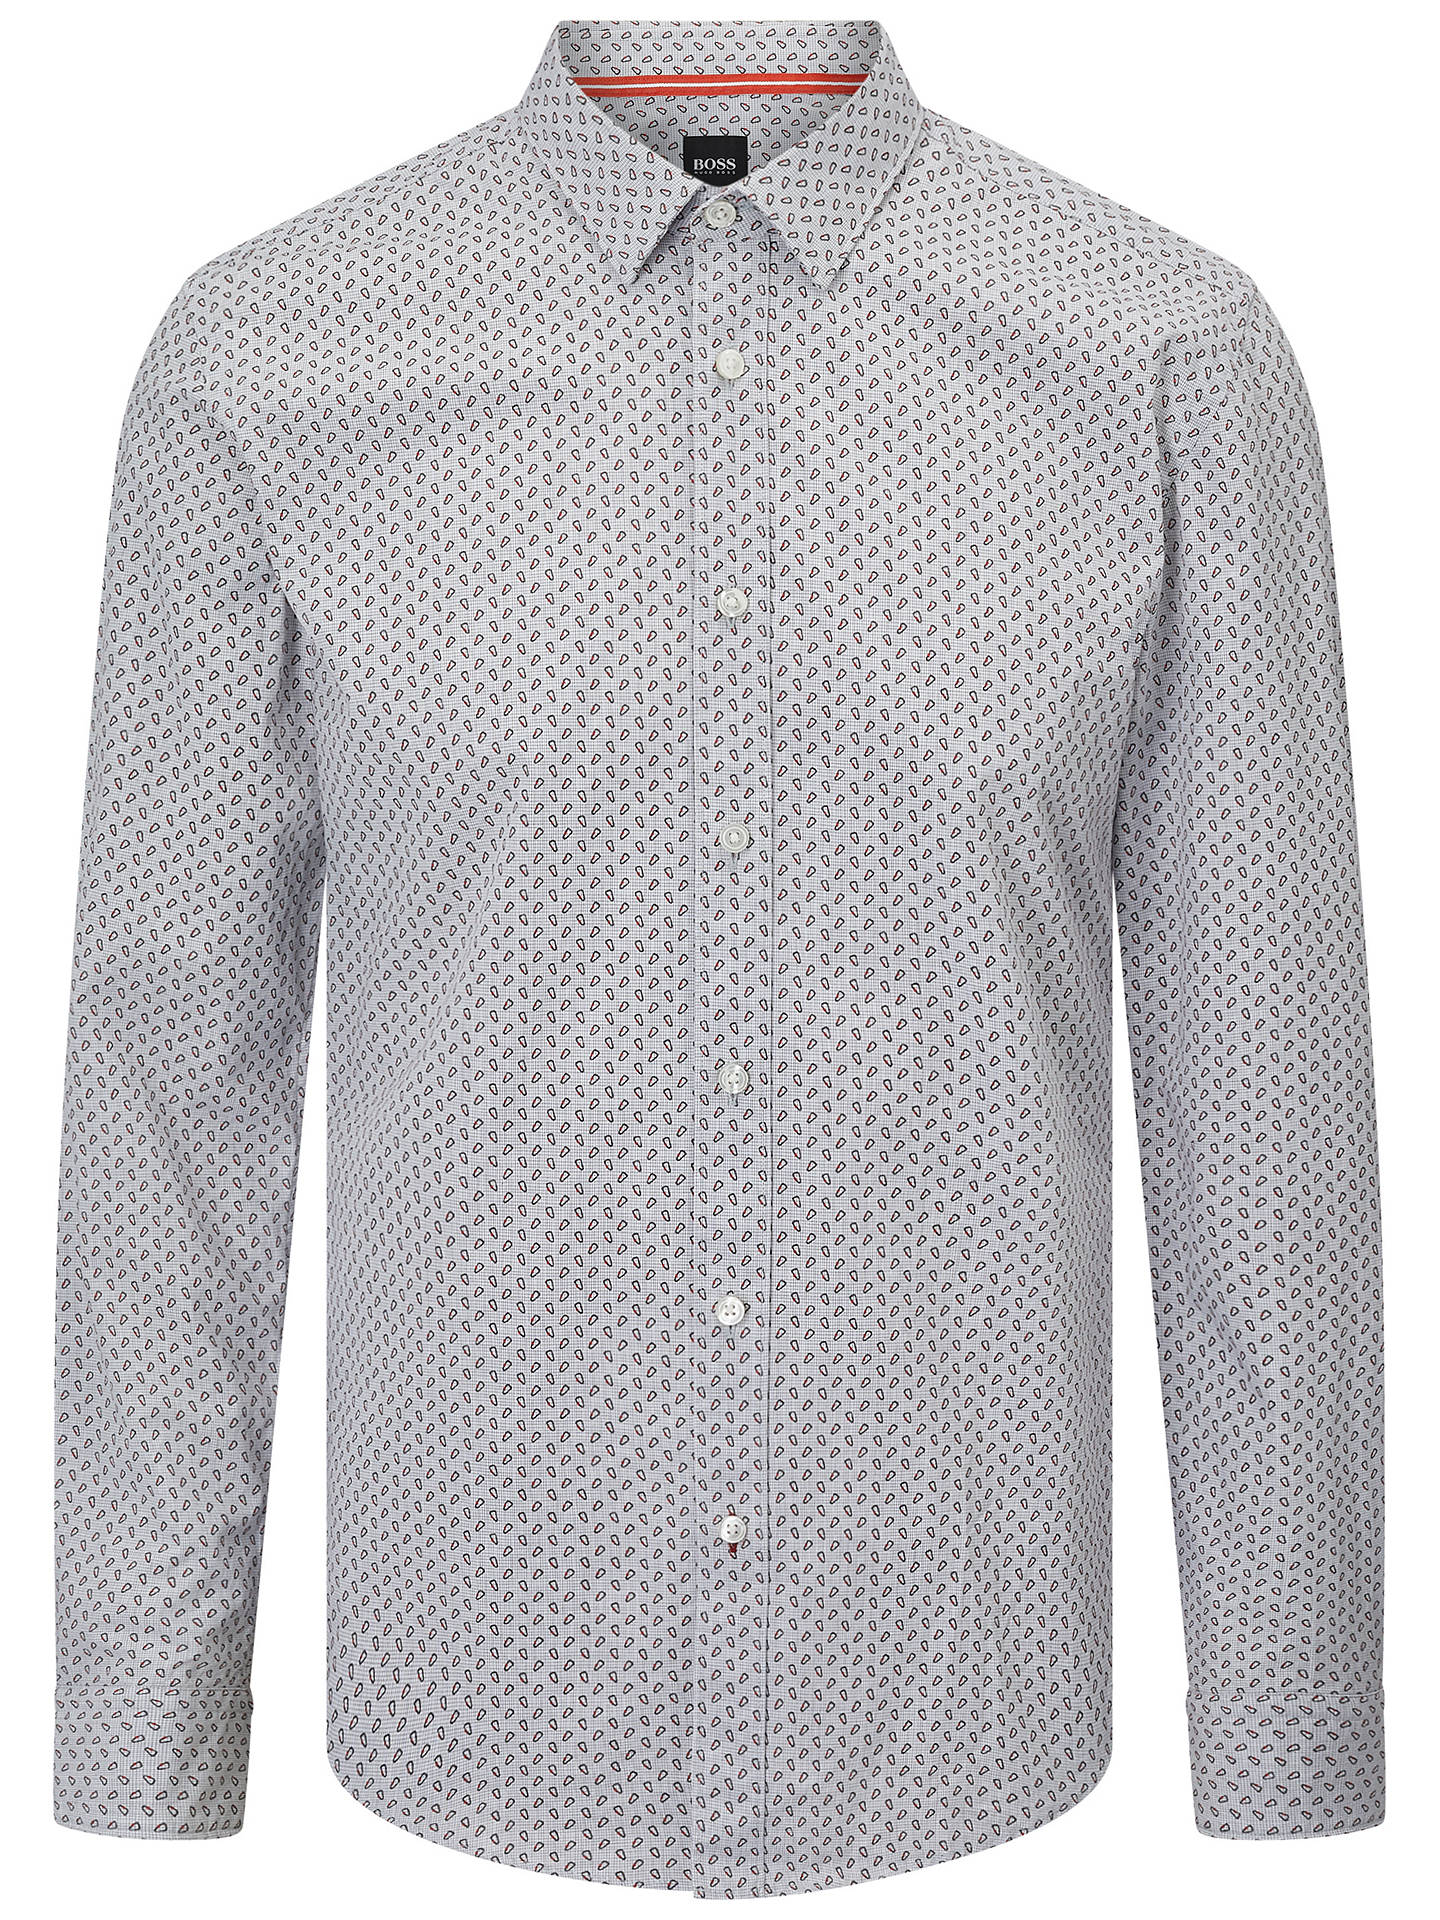 BuyBOSS Ronni Abstract Print Shirt, Open Grey, S Online at johnlewis.com